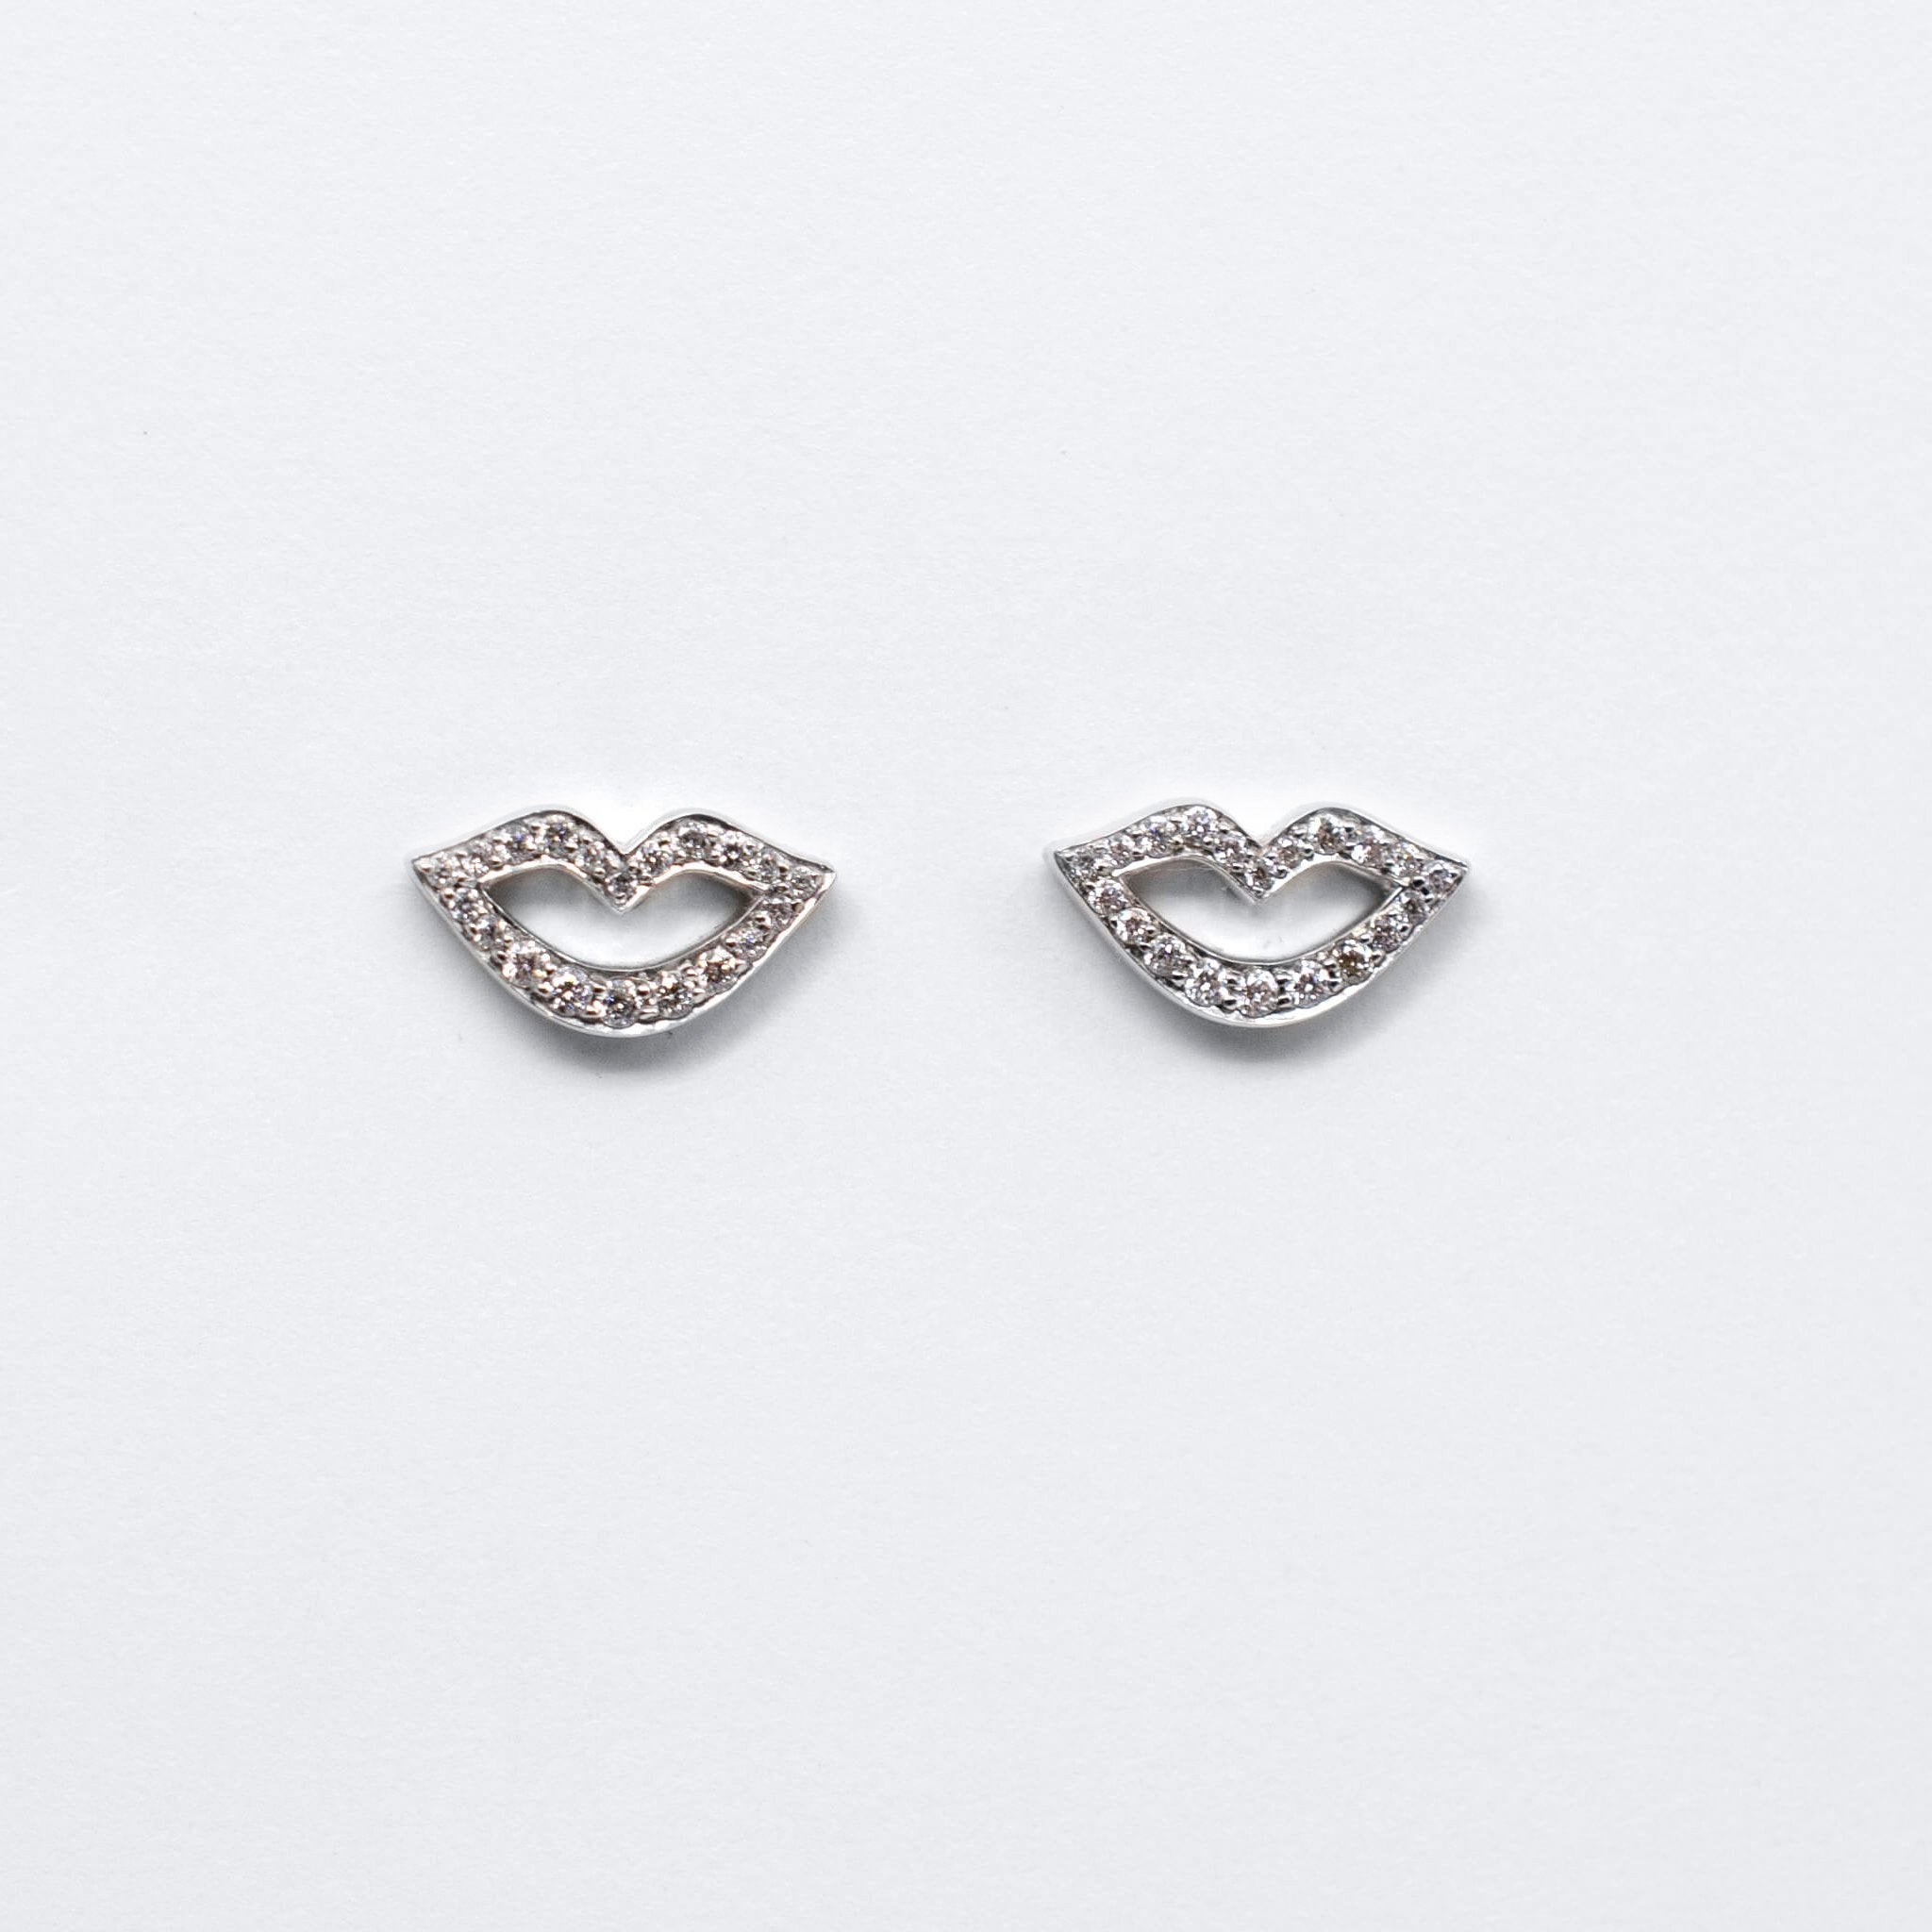 Smile Stud Earrings - White Gold